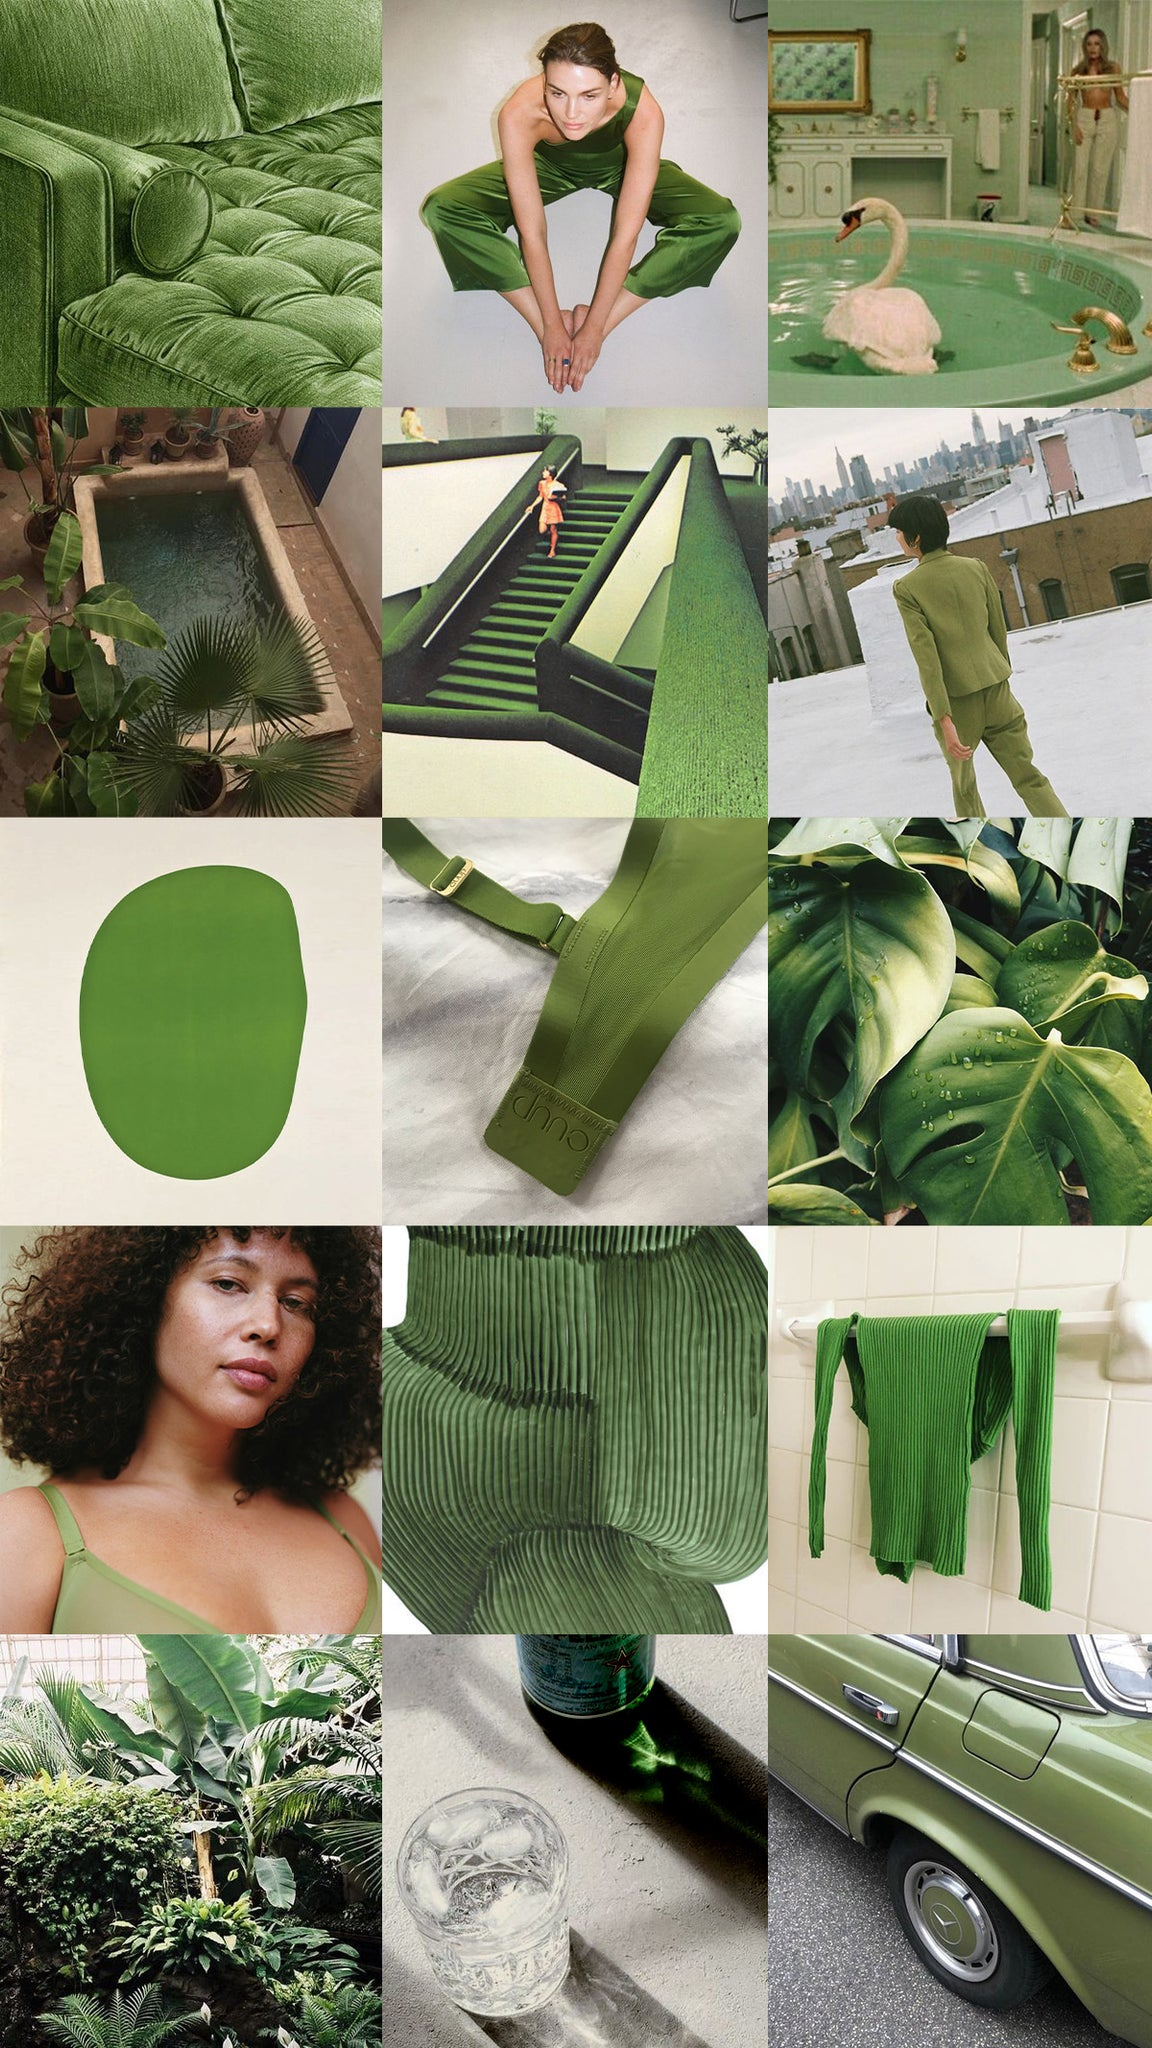 Moodboard for Grass